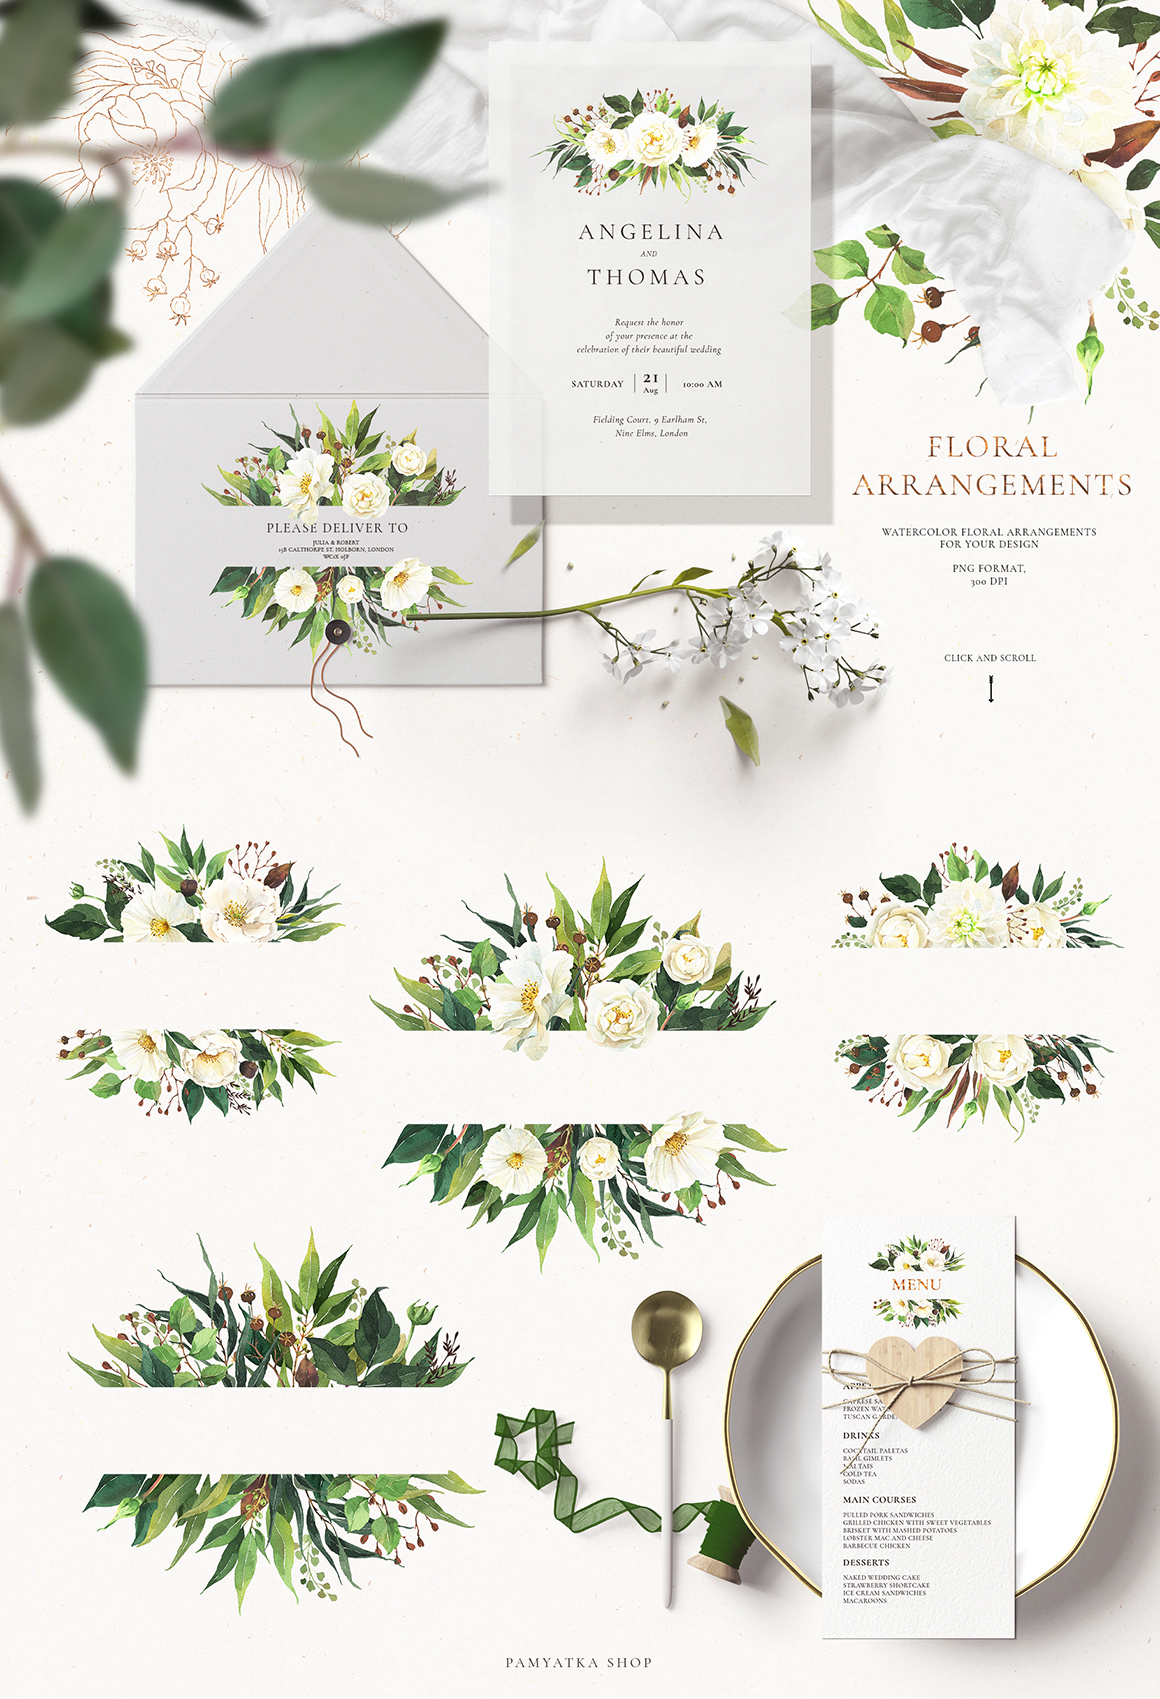 Spring Greenery & White Flowers